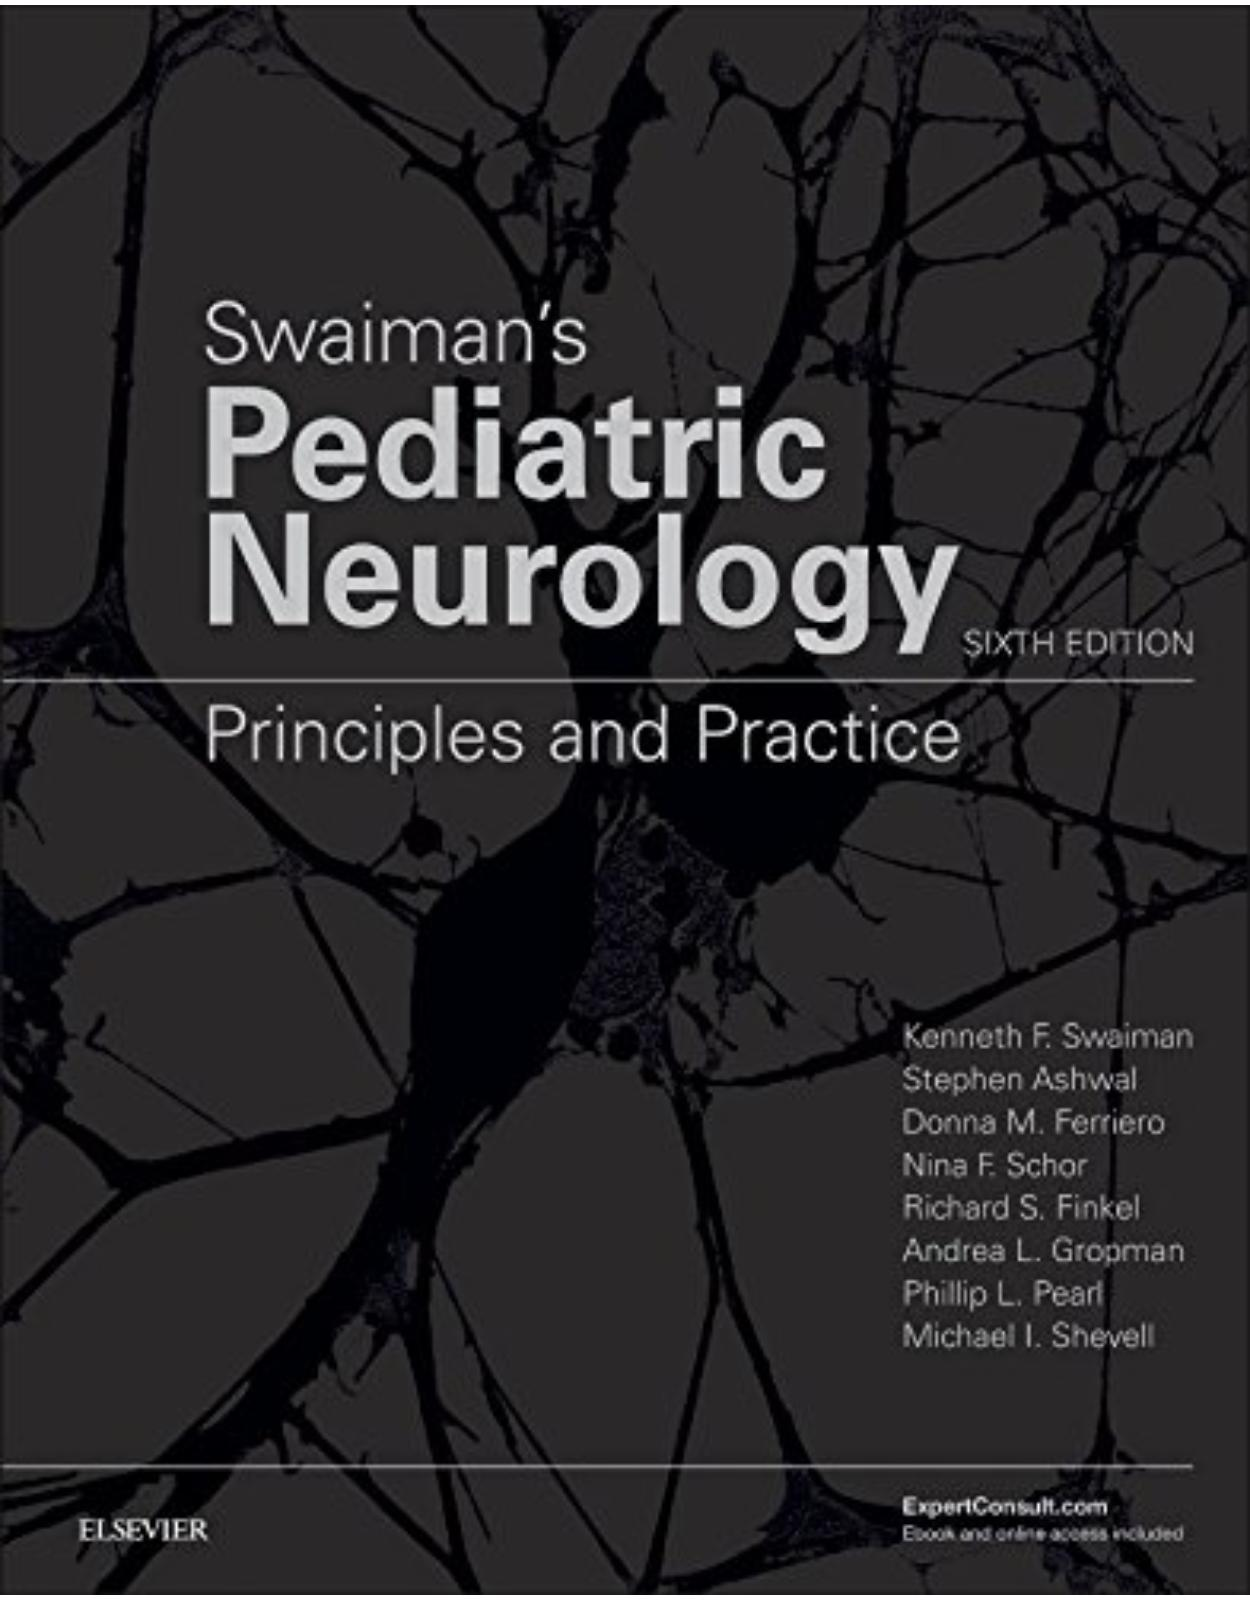 Swaiman's Pediatric Neurology, 6th Edition